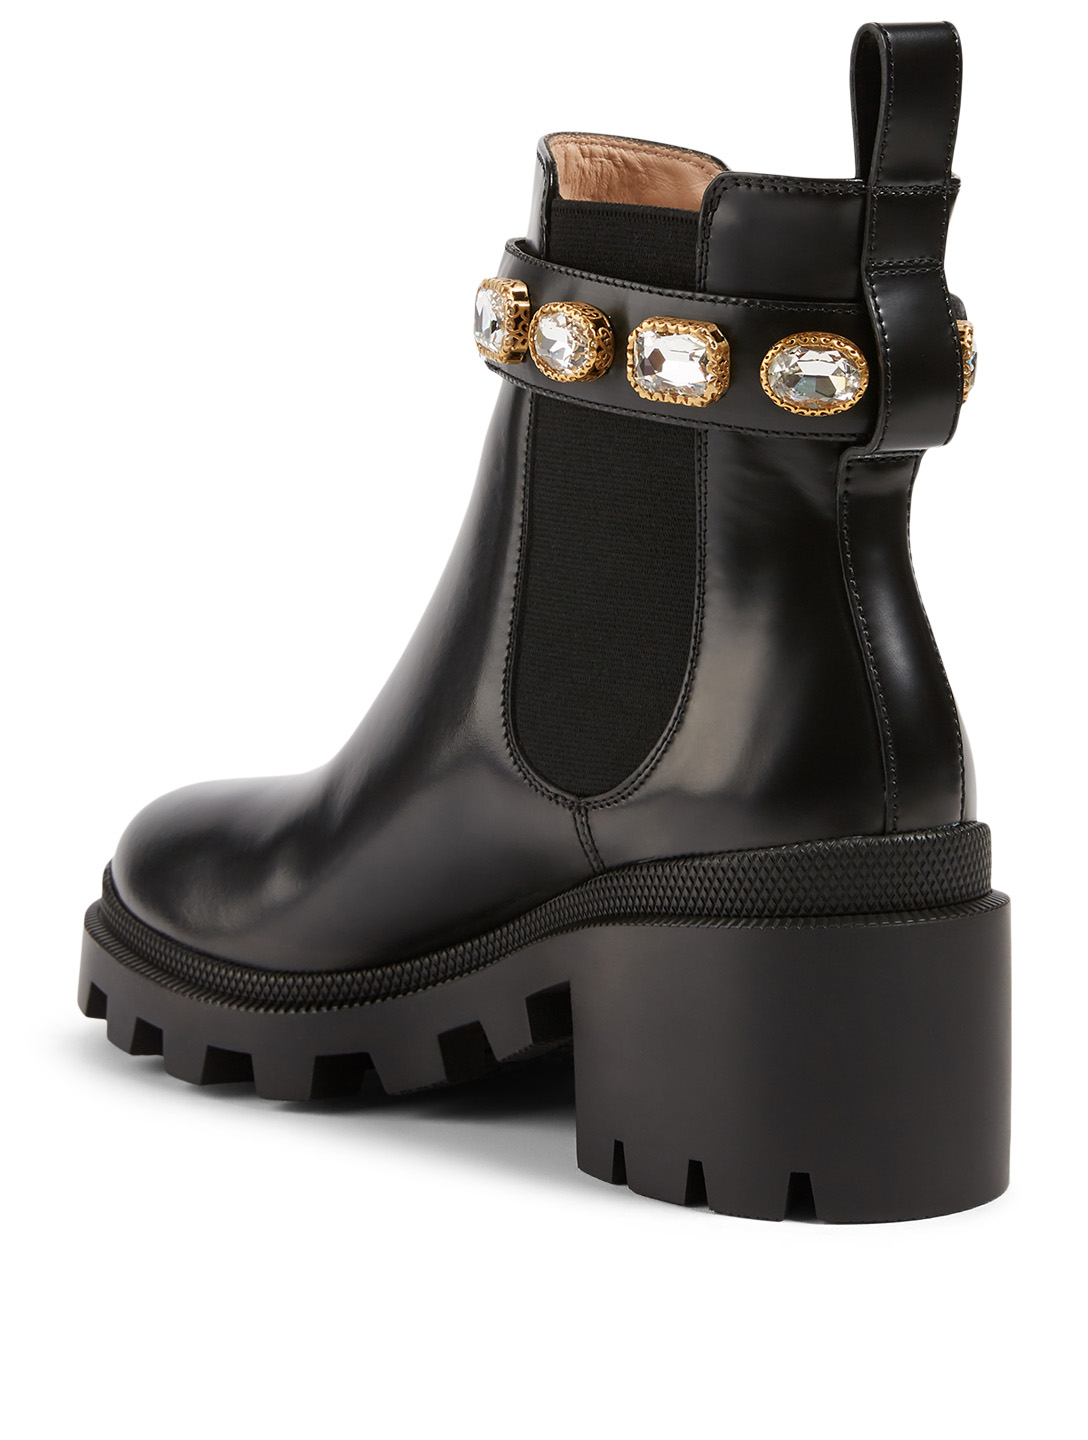 GUCCI Leather Ankle Boots With Crystal Belt Women's Black